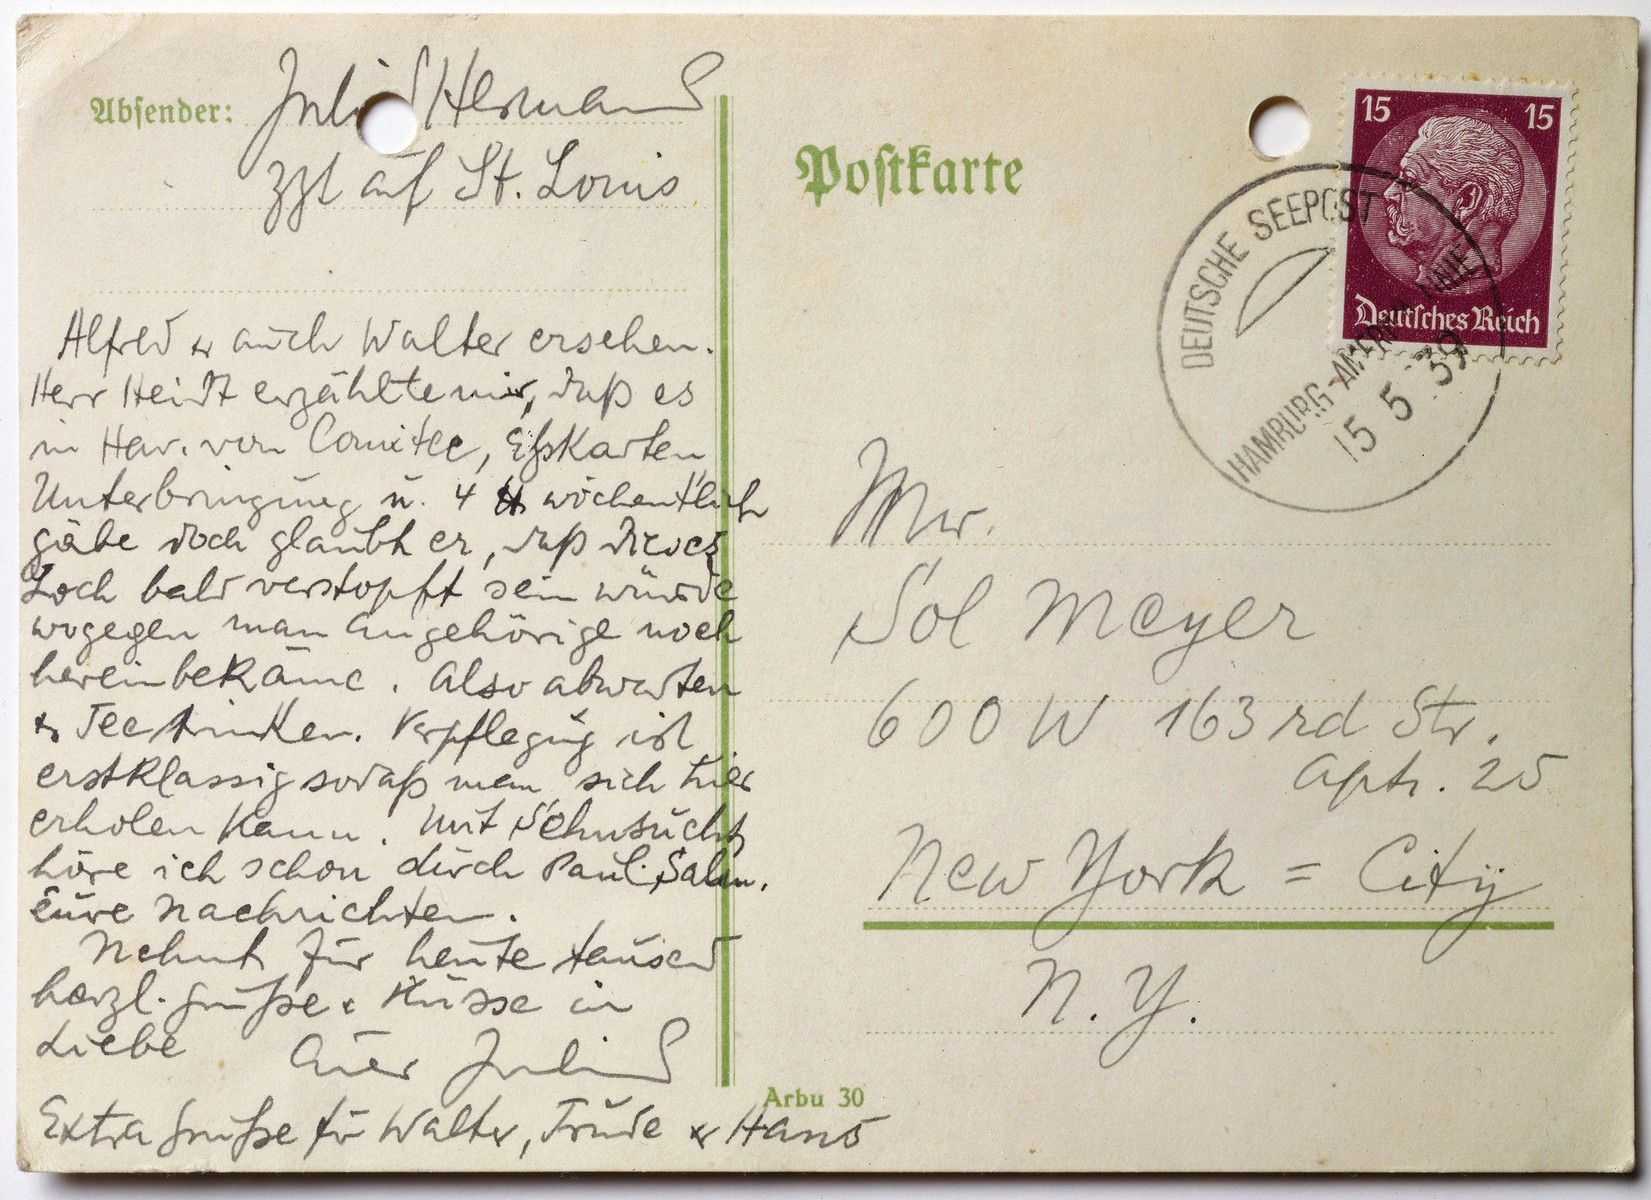 Postcard written by MS St. Louis passenger, Julius Hermann, to Sol Mayer in New York.